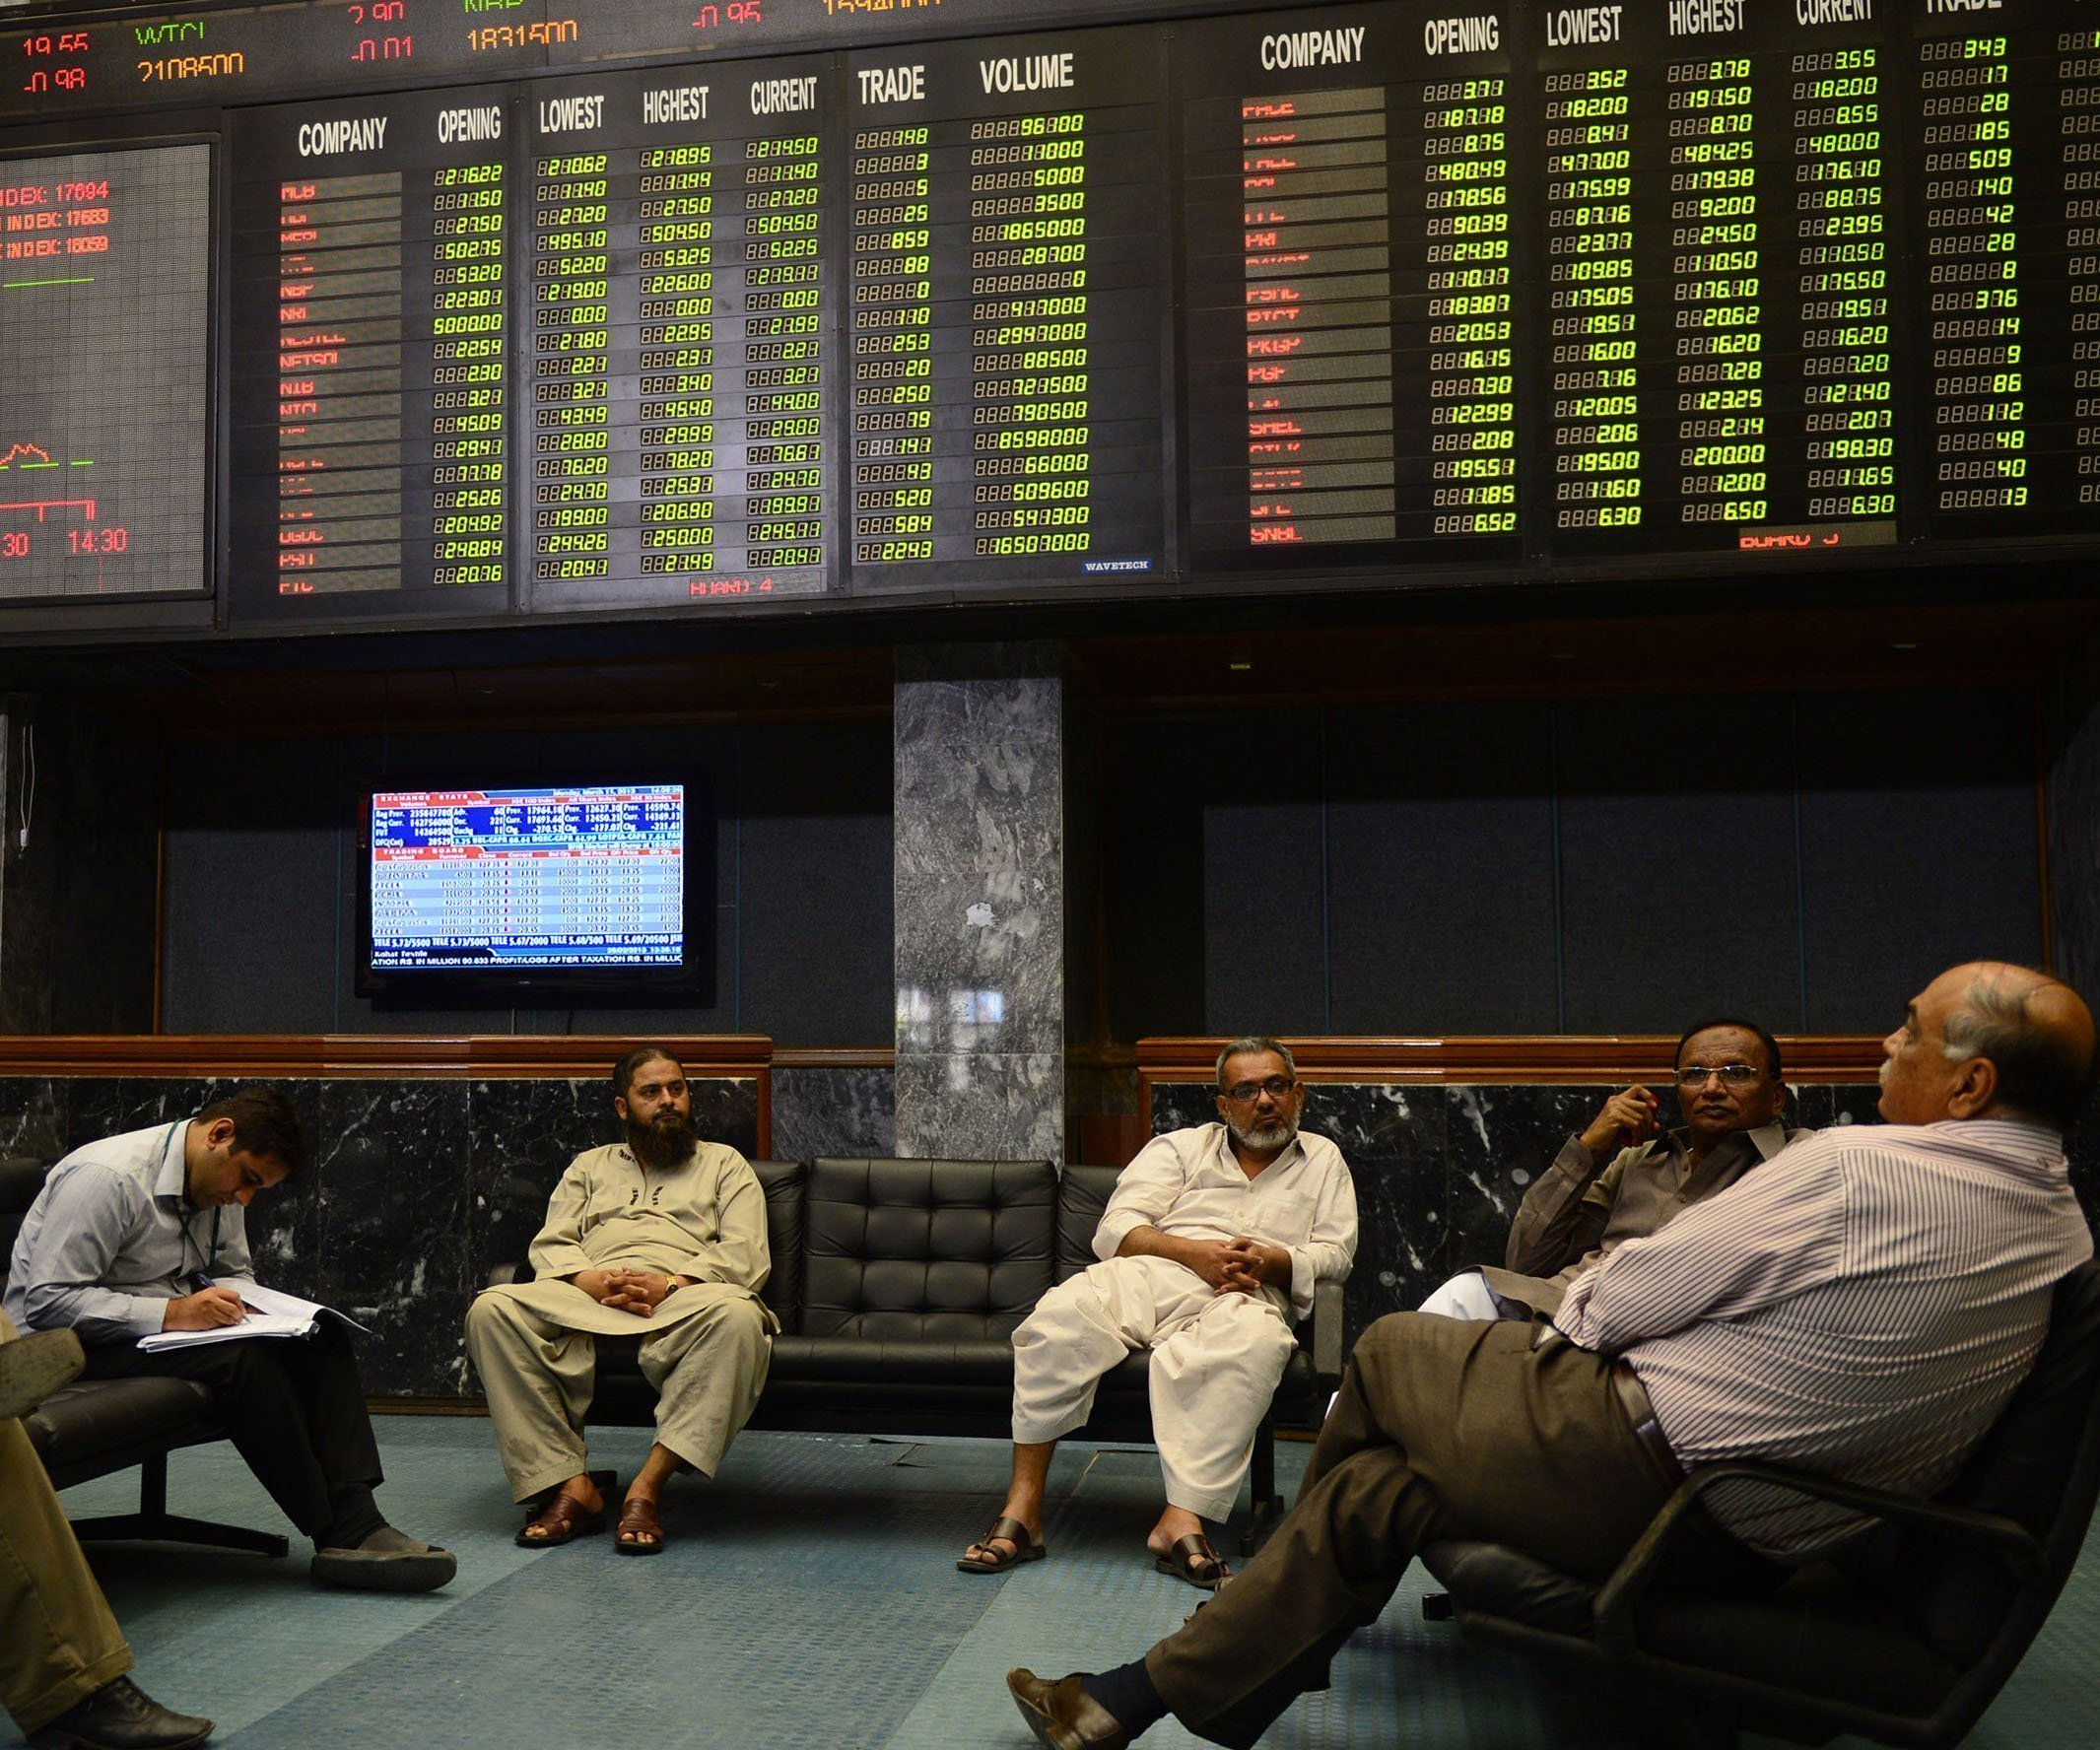 benchmark index increases 87 27 points to settle at 31 329 46 photo afp